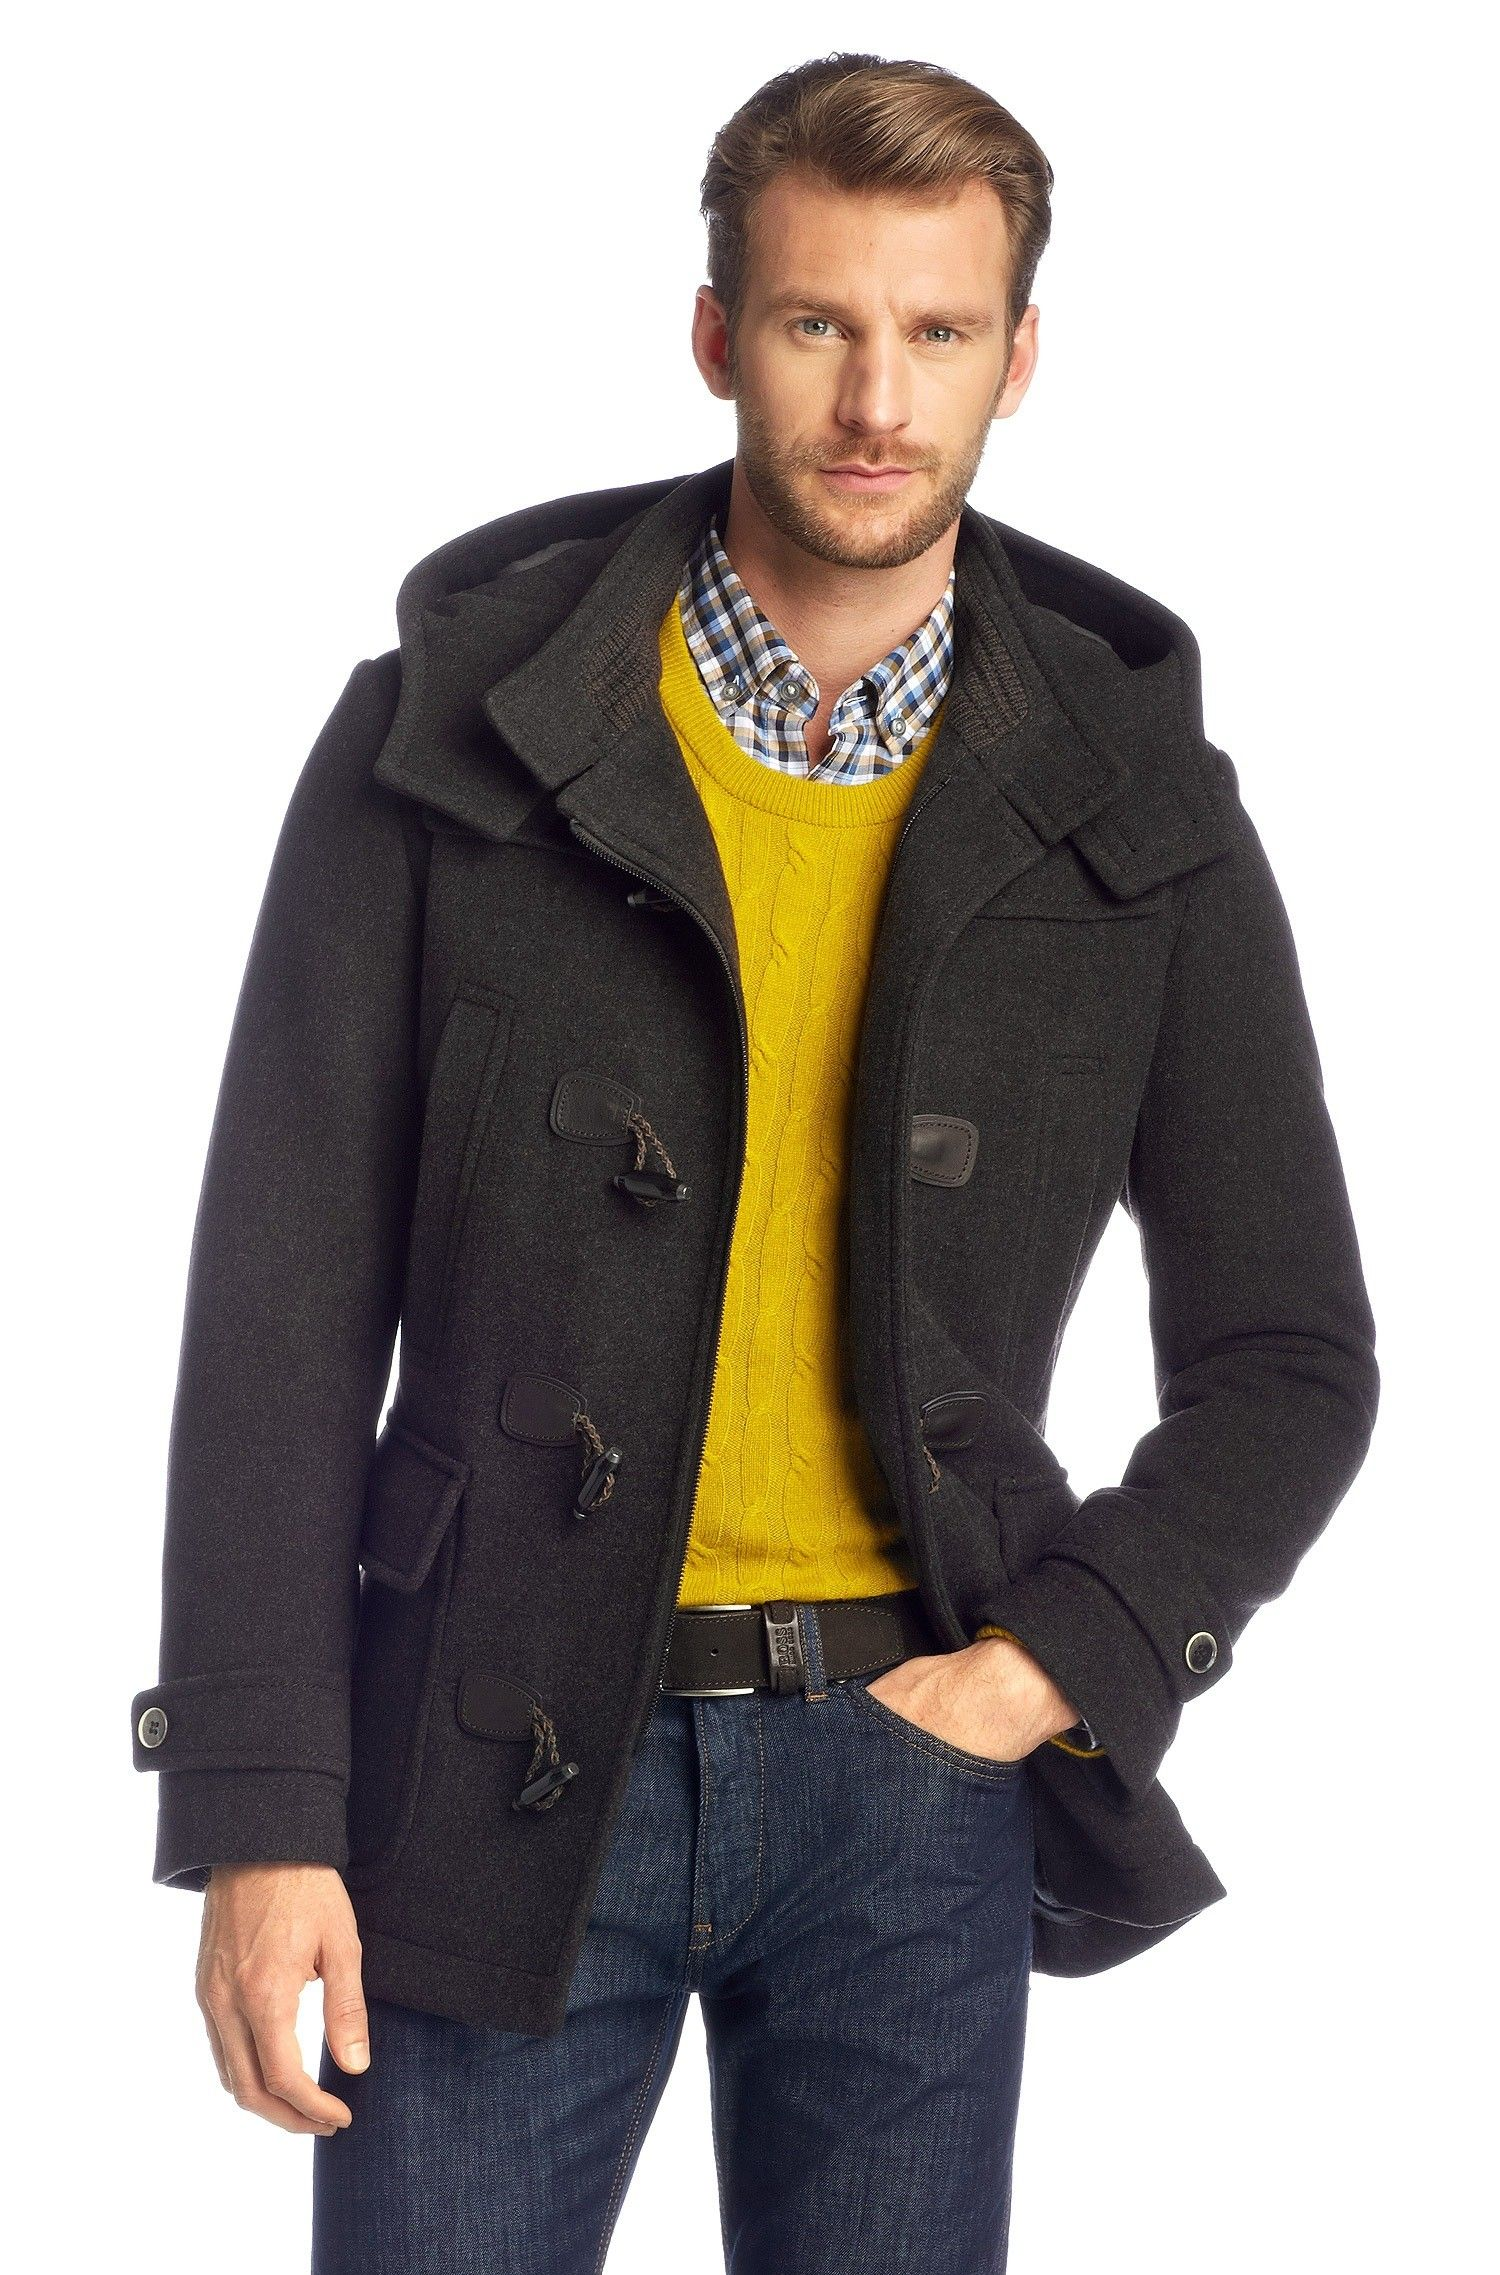 Wool/cashmere duffle coat 'Capez' by BOSS